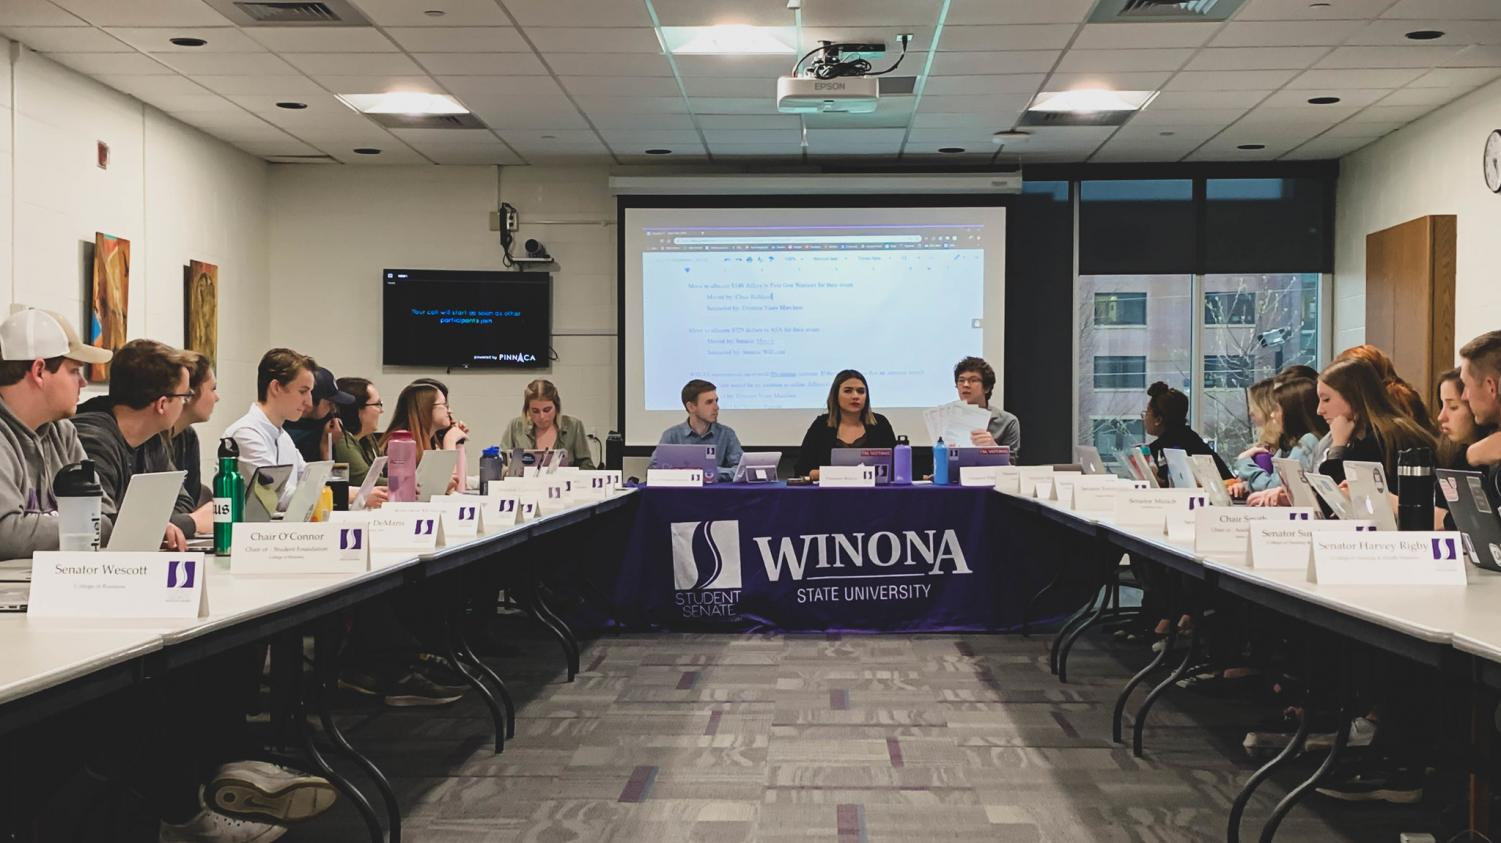 Winona State Student Senate met on Wednesday, April 17 in the Purple Rooms, one of the main topics discussed was the availability of textbooks for popular general education courses.